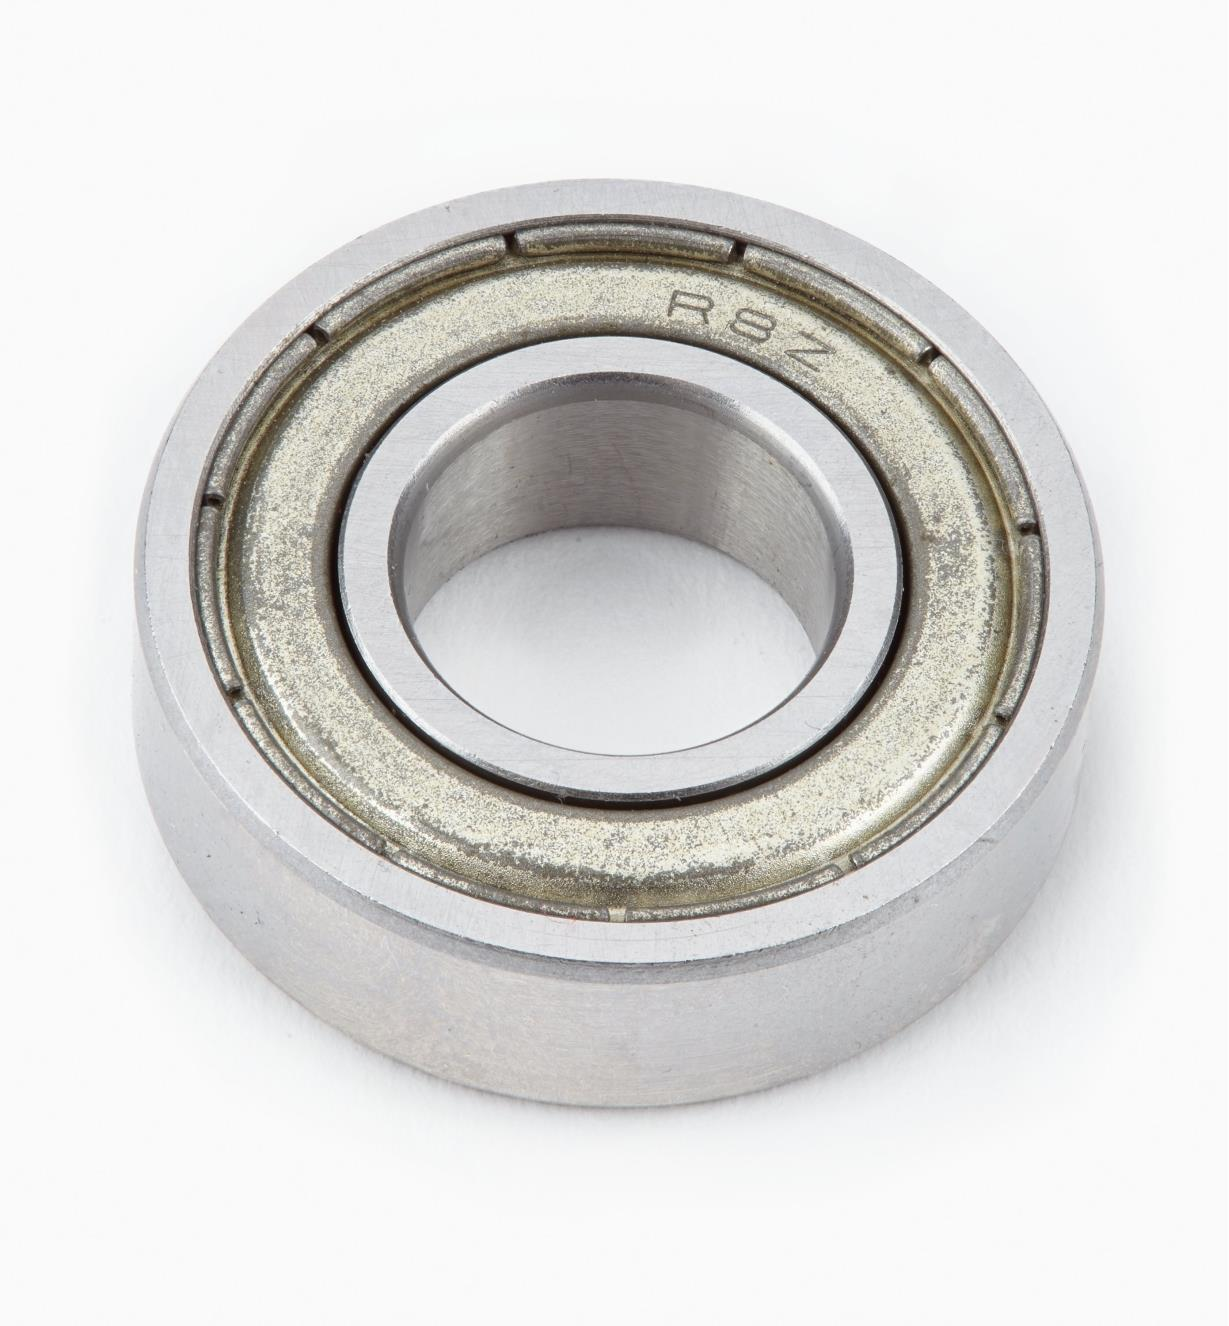 "16J9510 - 1 1/8"" x 1/2"" Replacement Ball Bearing"